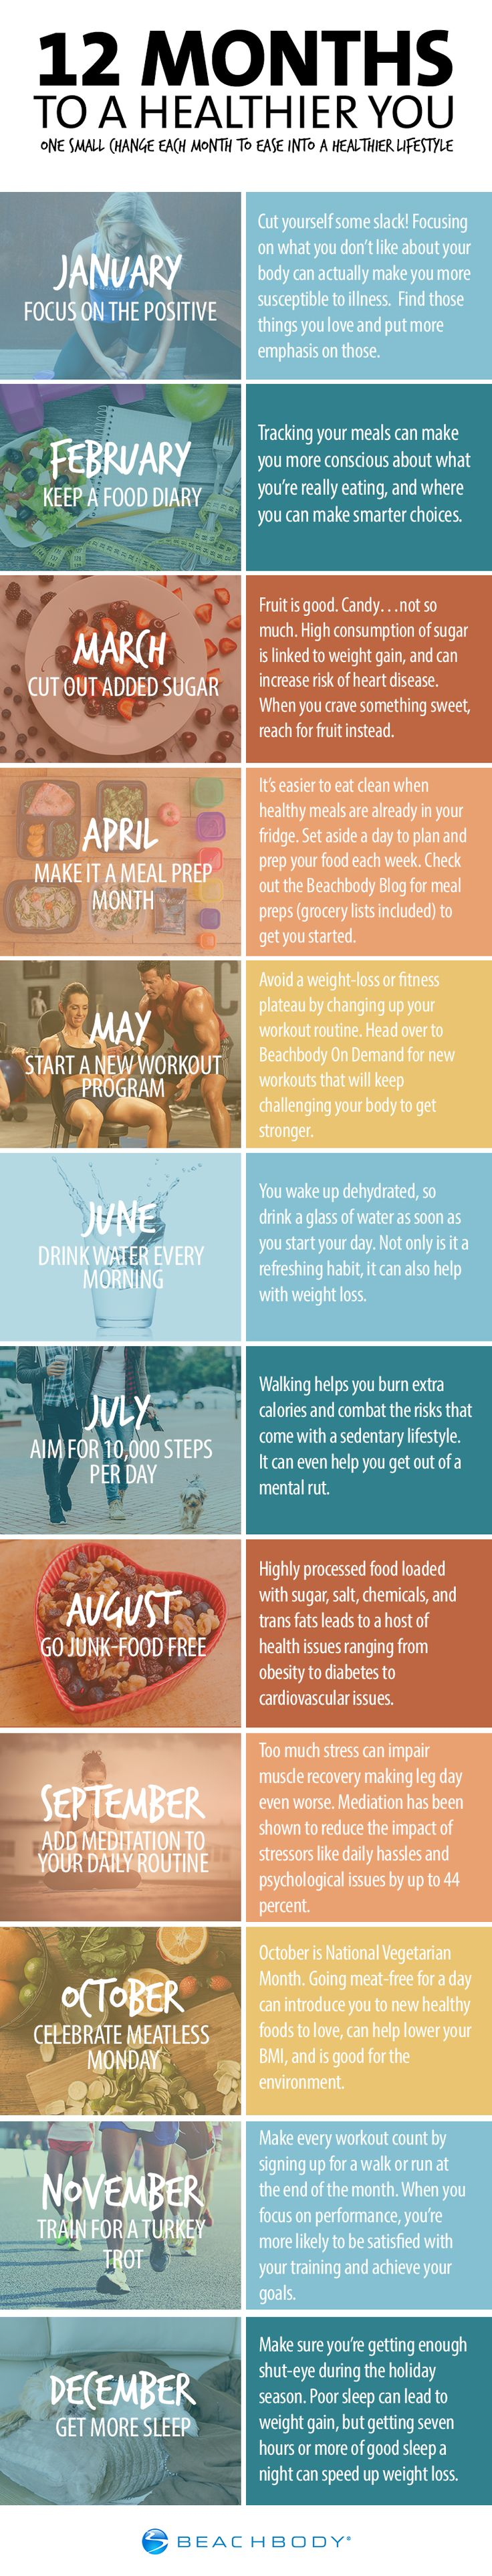 Make one small change a month to ease yourself into a healthier lifestyle, with the help of this guide.